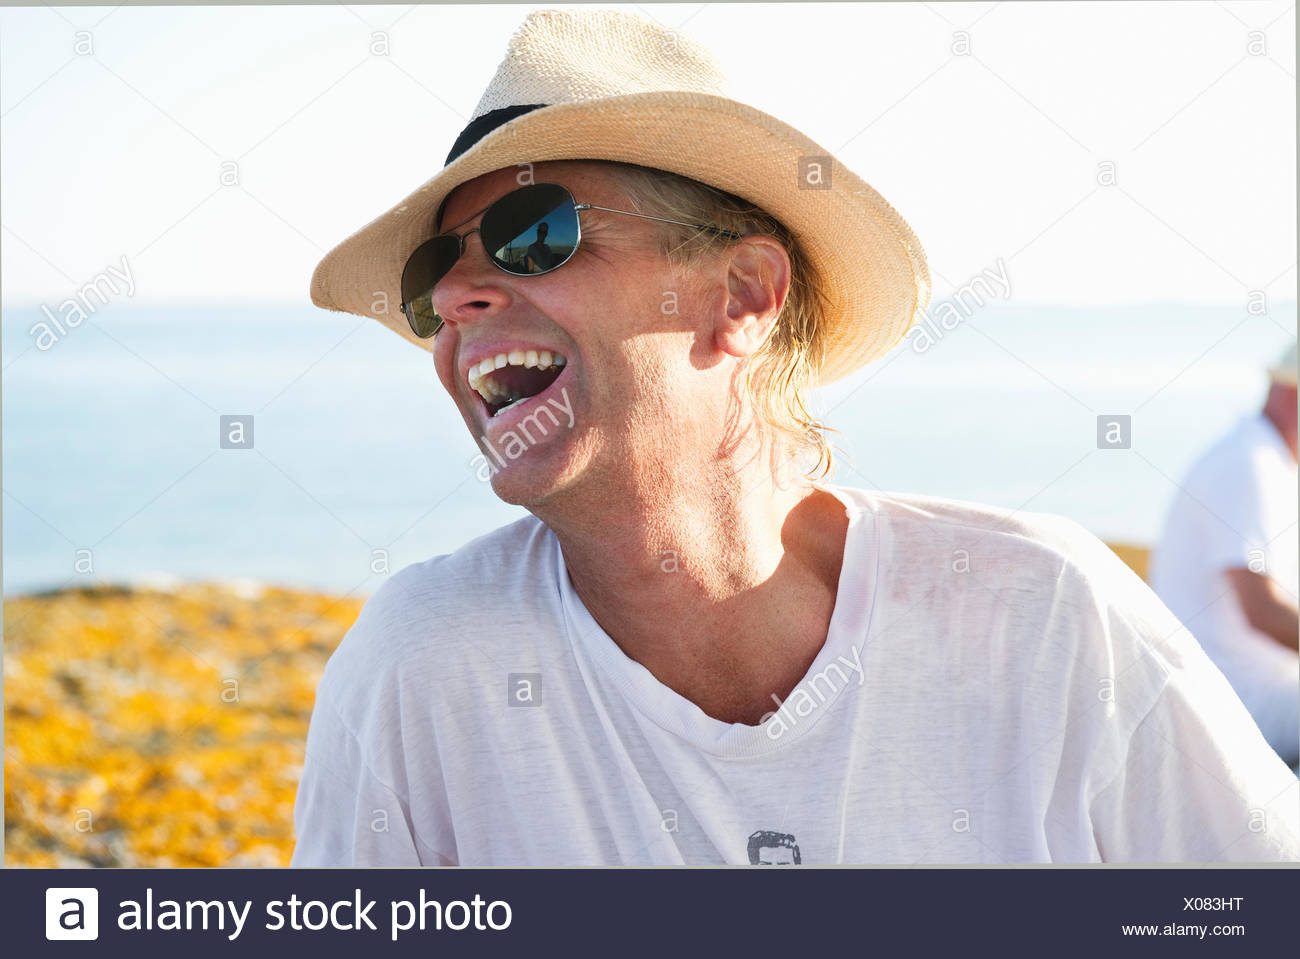 Portrait of smiling man wearing Sunglasses and straw hat Photo Stock